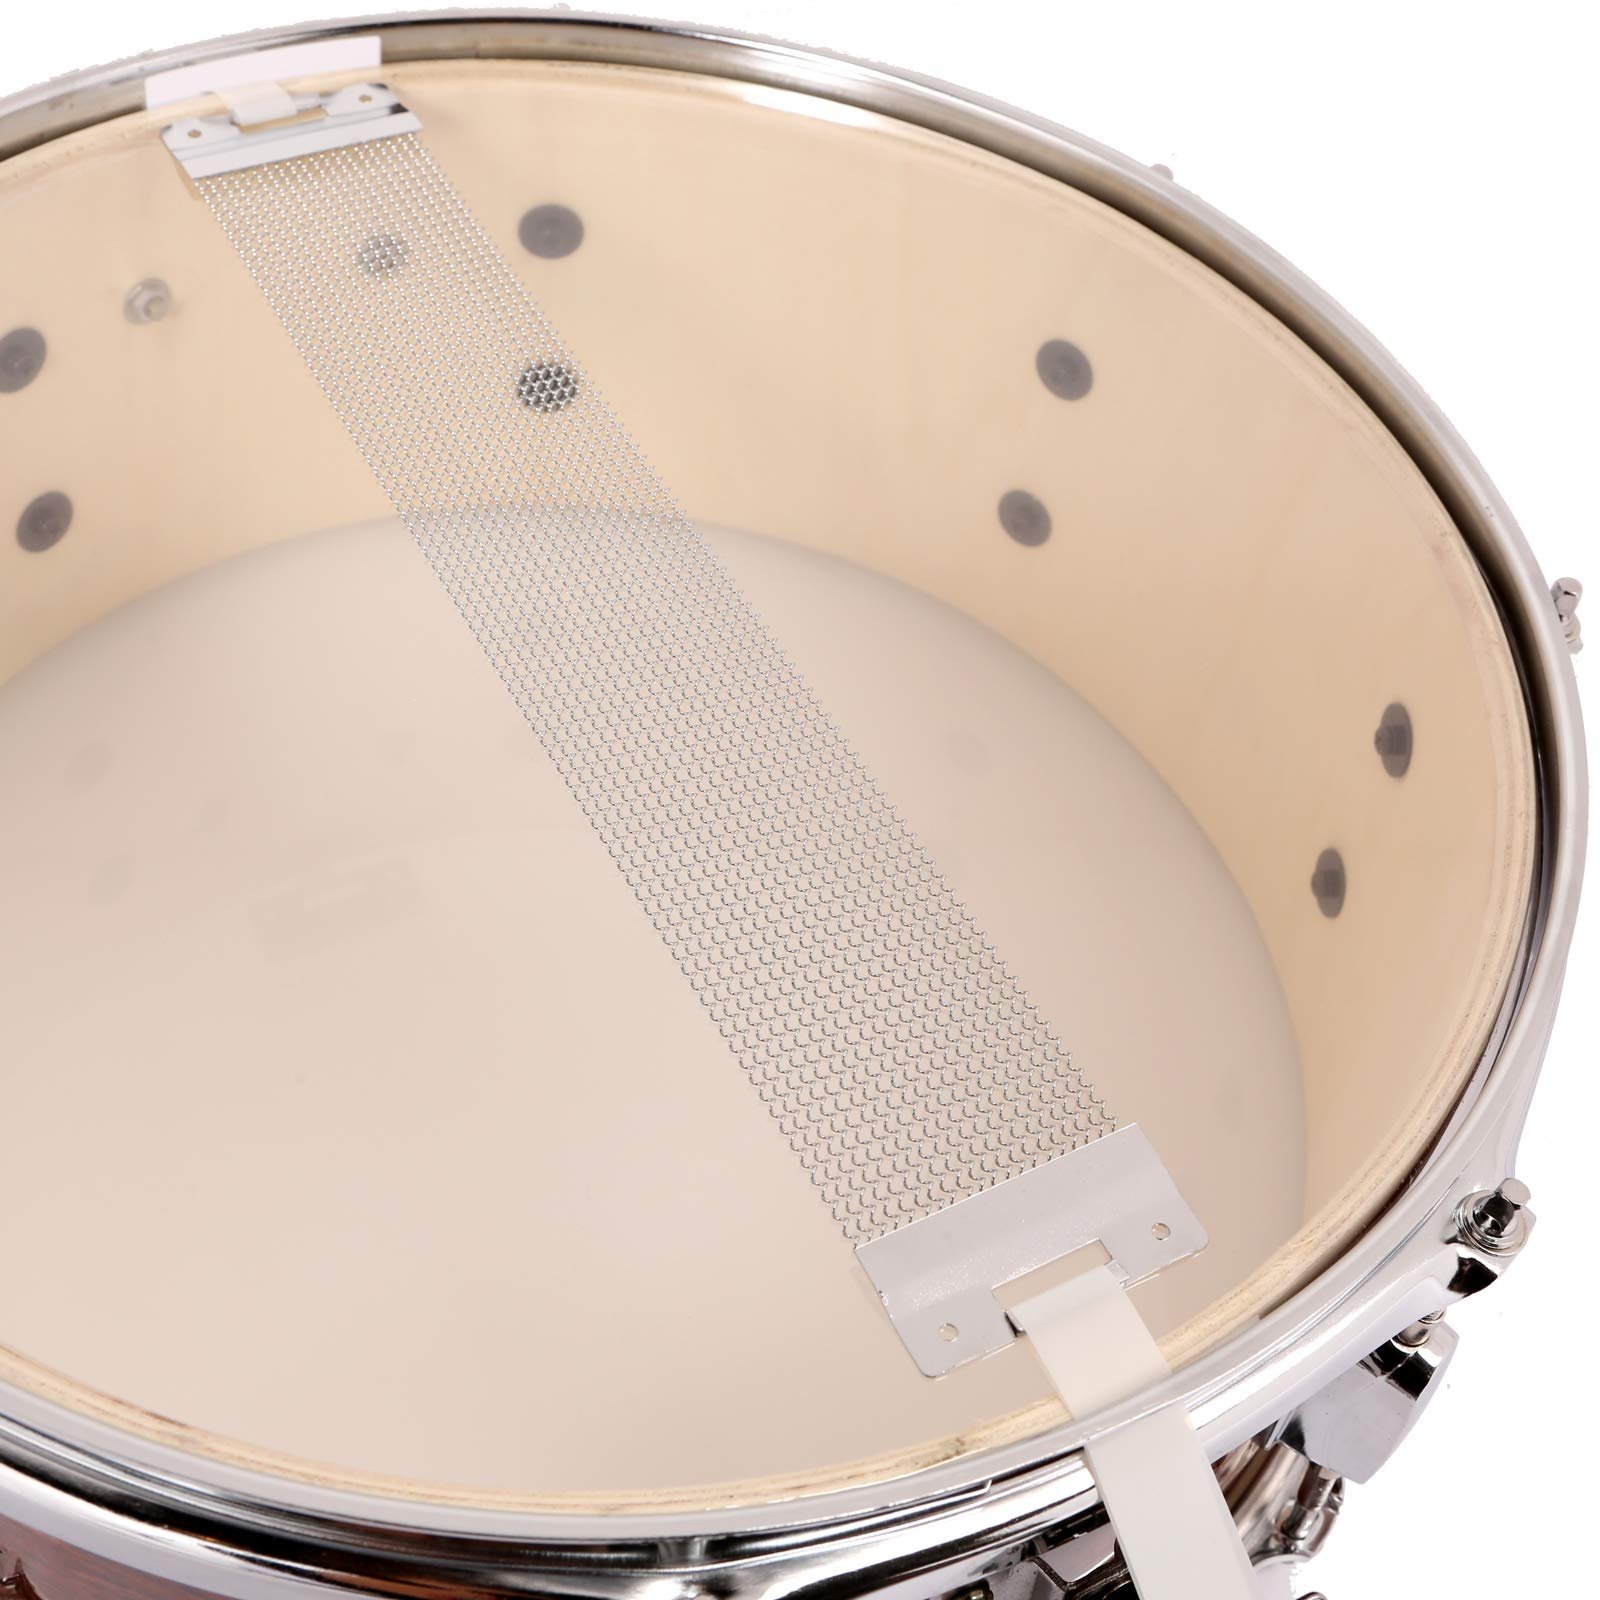 LAGRIMA Student Beginner Snare Drum W/Drum Key, Drumsticks and Strap|14x5.5 inch|Real Wood Shell|8 Metal Tuning Lugs by LAGRIMA (Image #4)